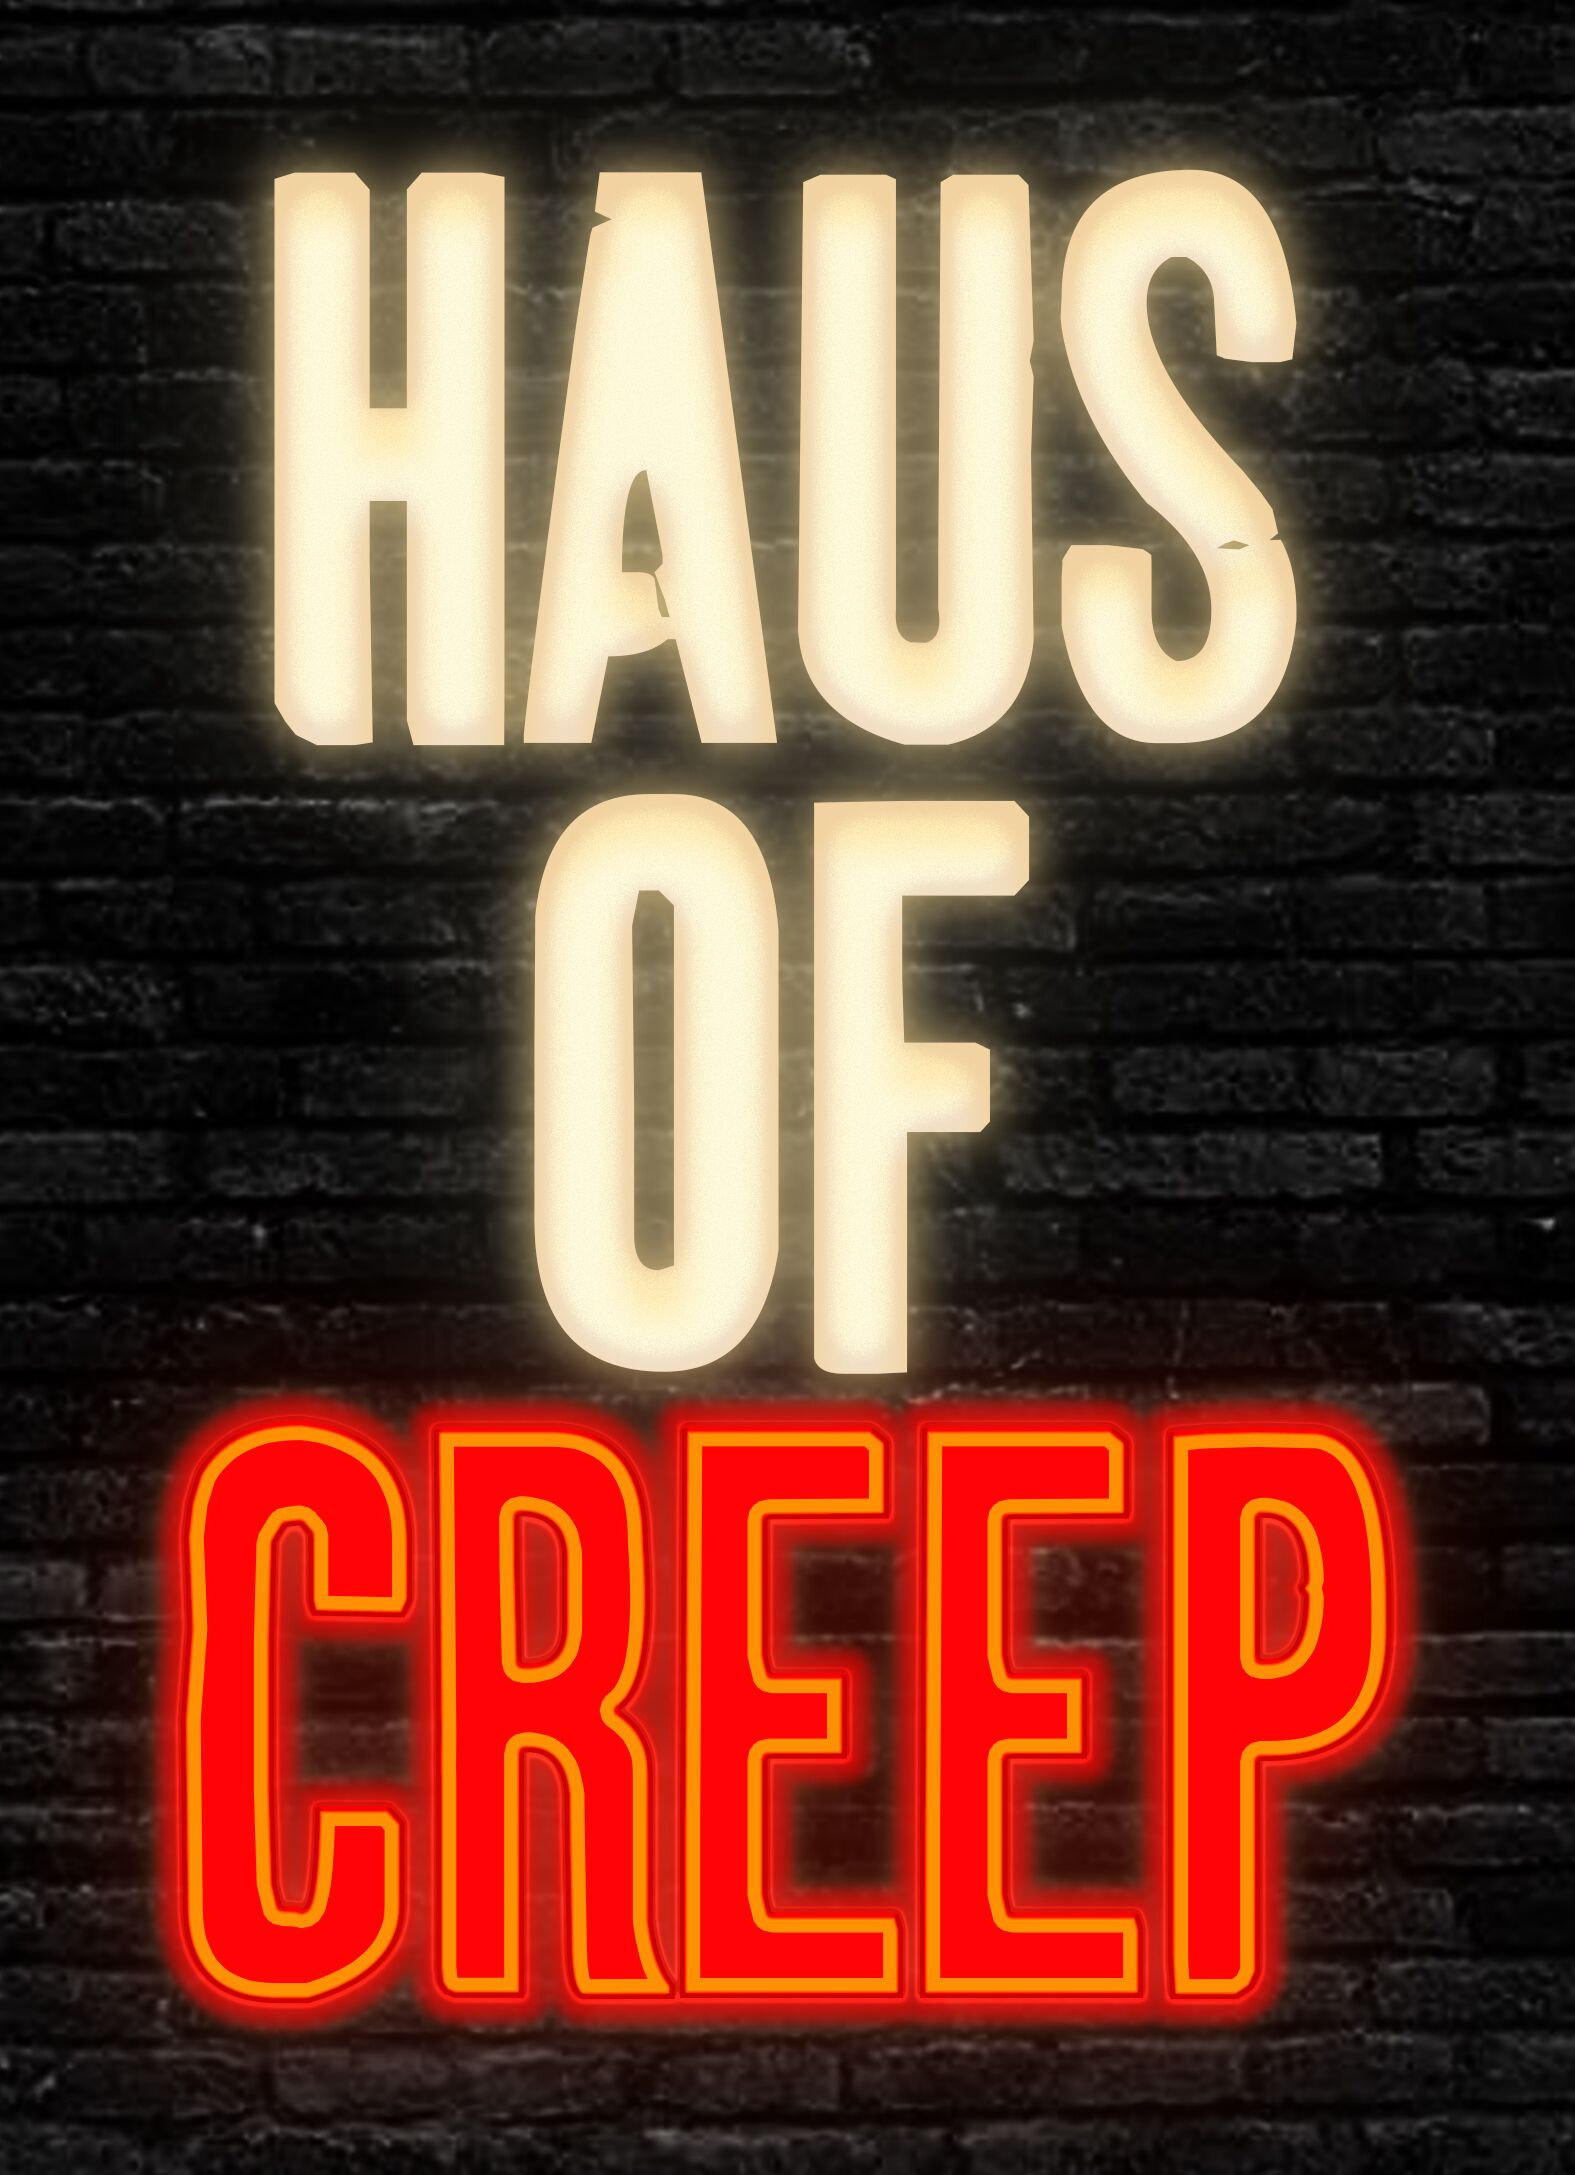 [News] Creep LA Returns with HAUS OF CREEP